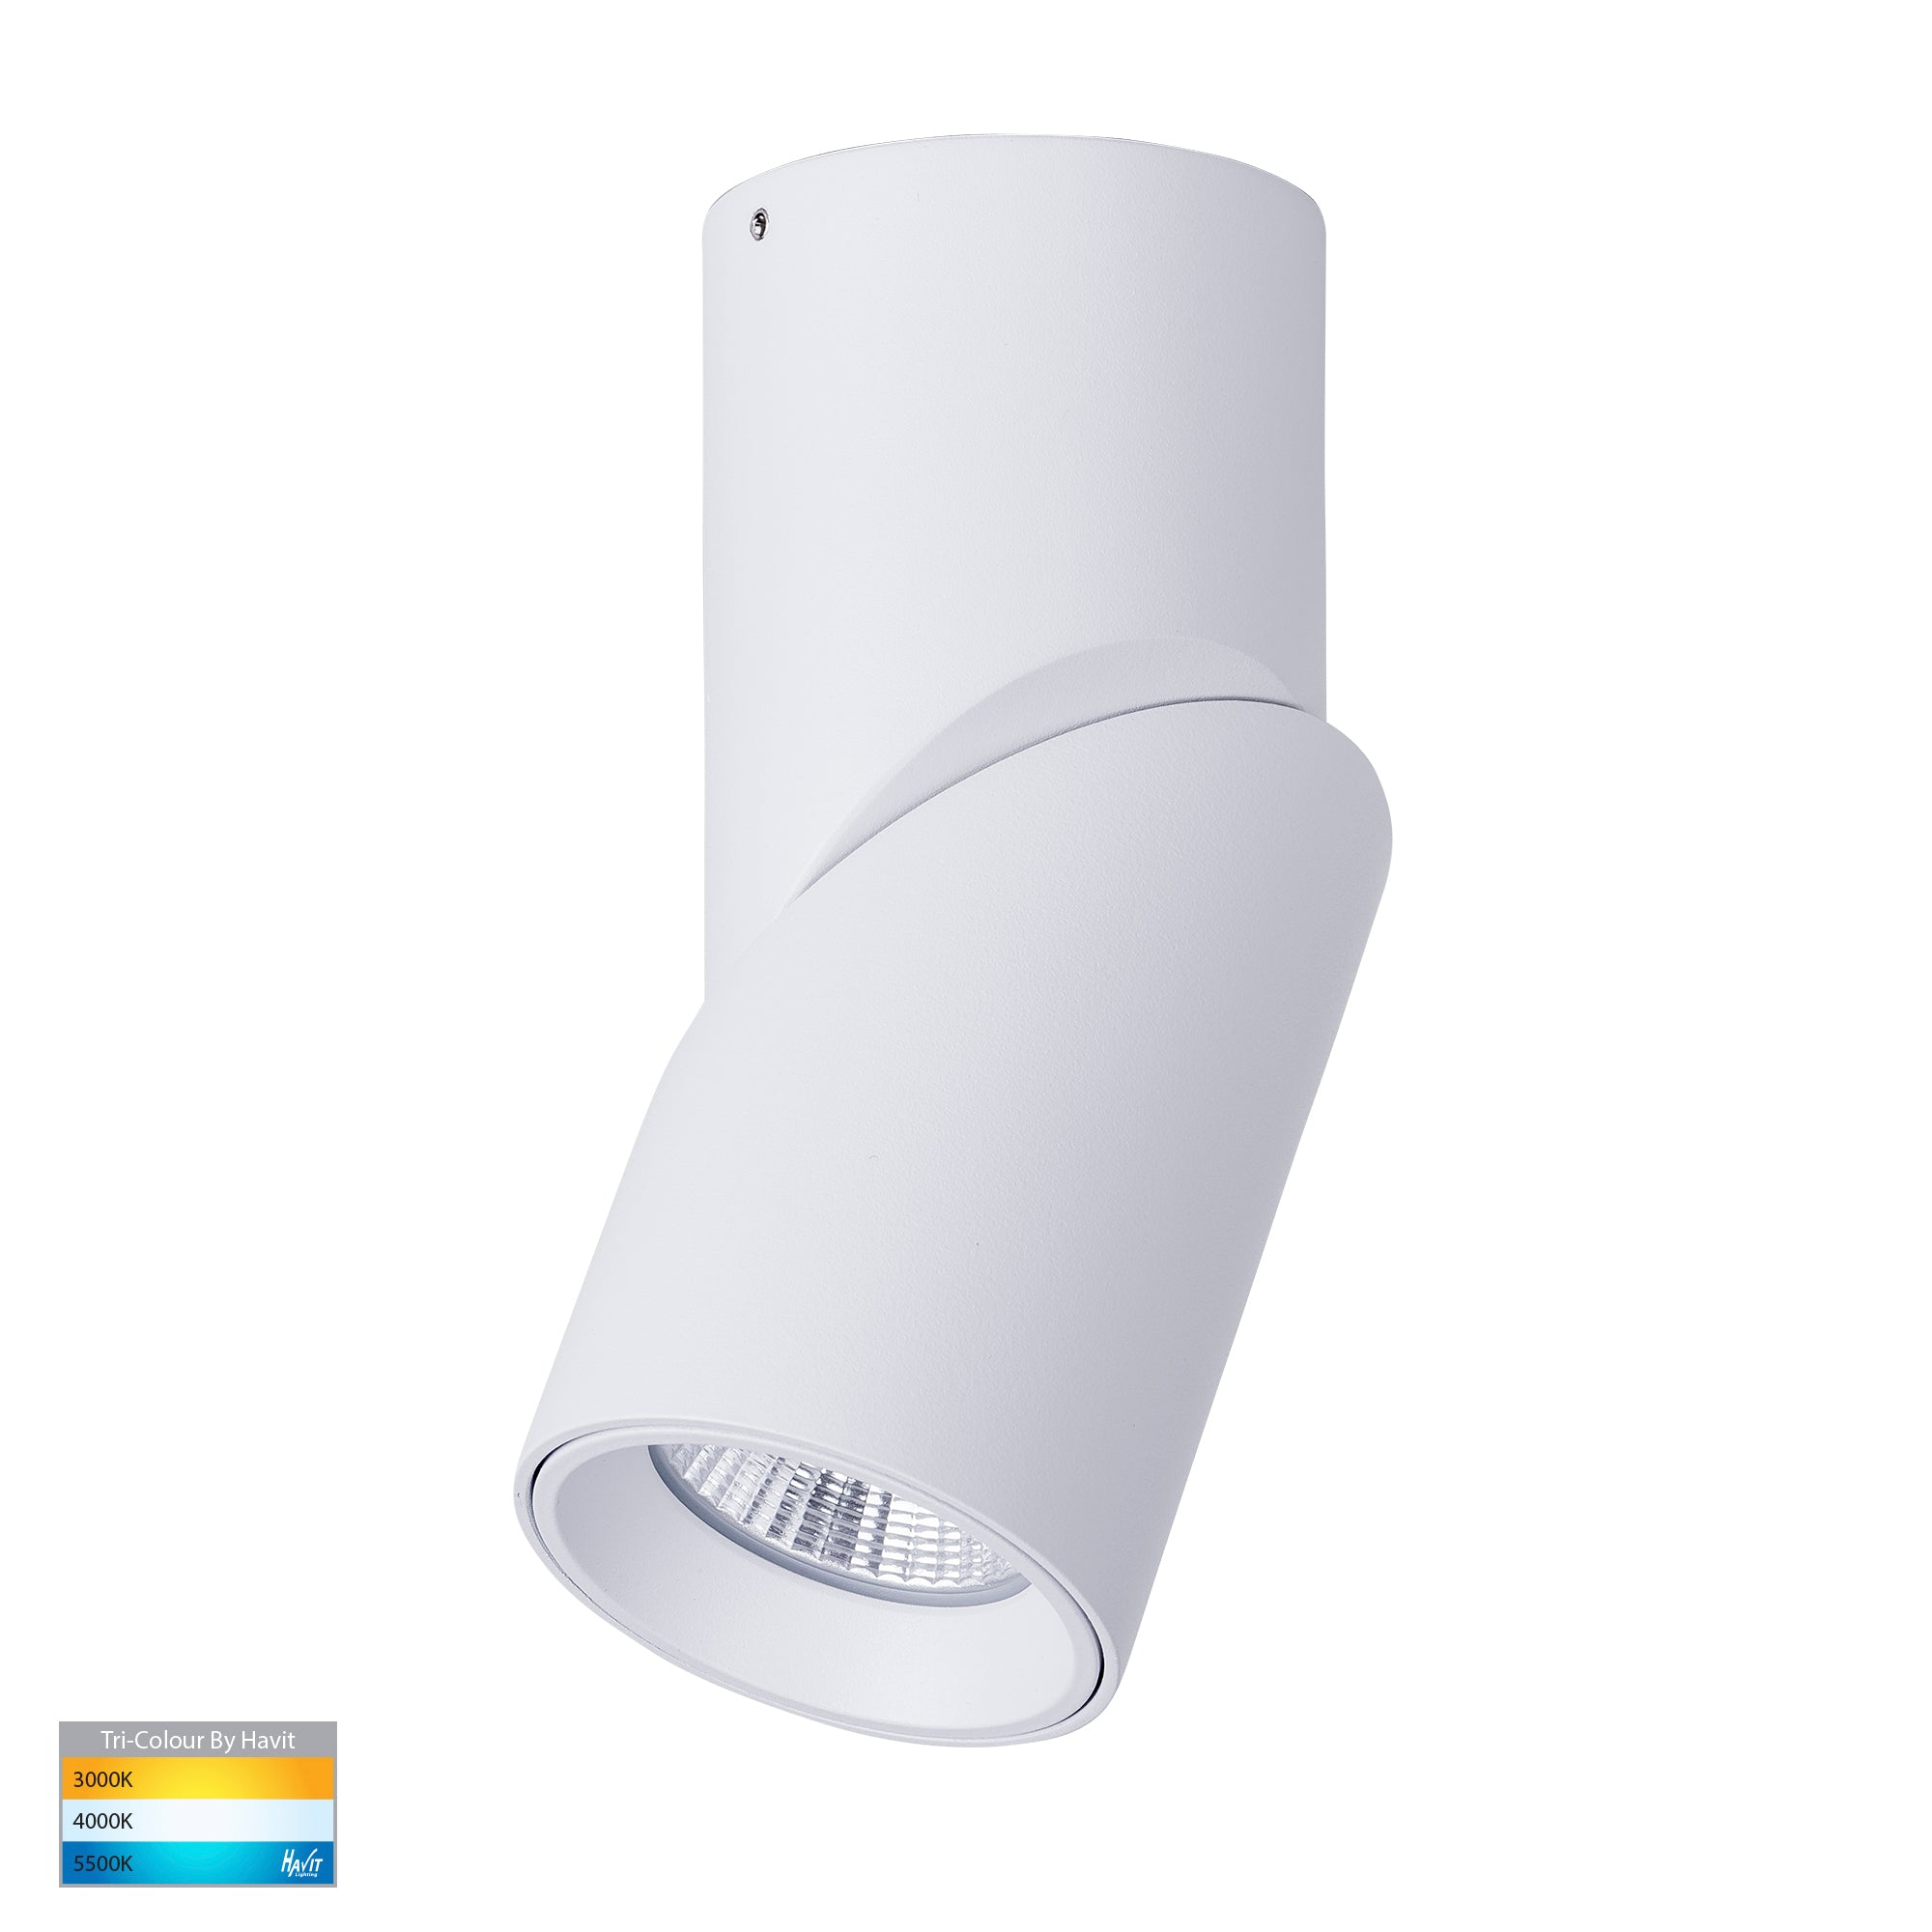 HV5823T-WHT - Nella White 12w Surface Mounted Rotatable LED Downlight